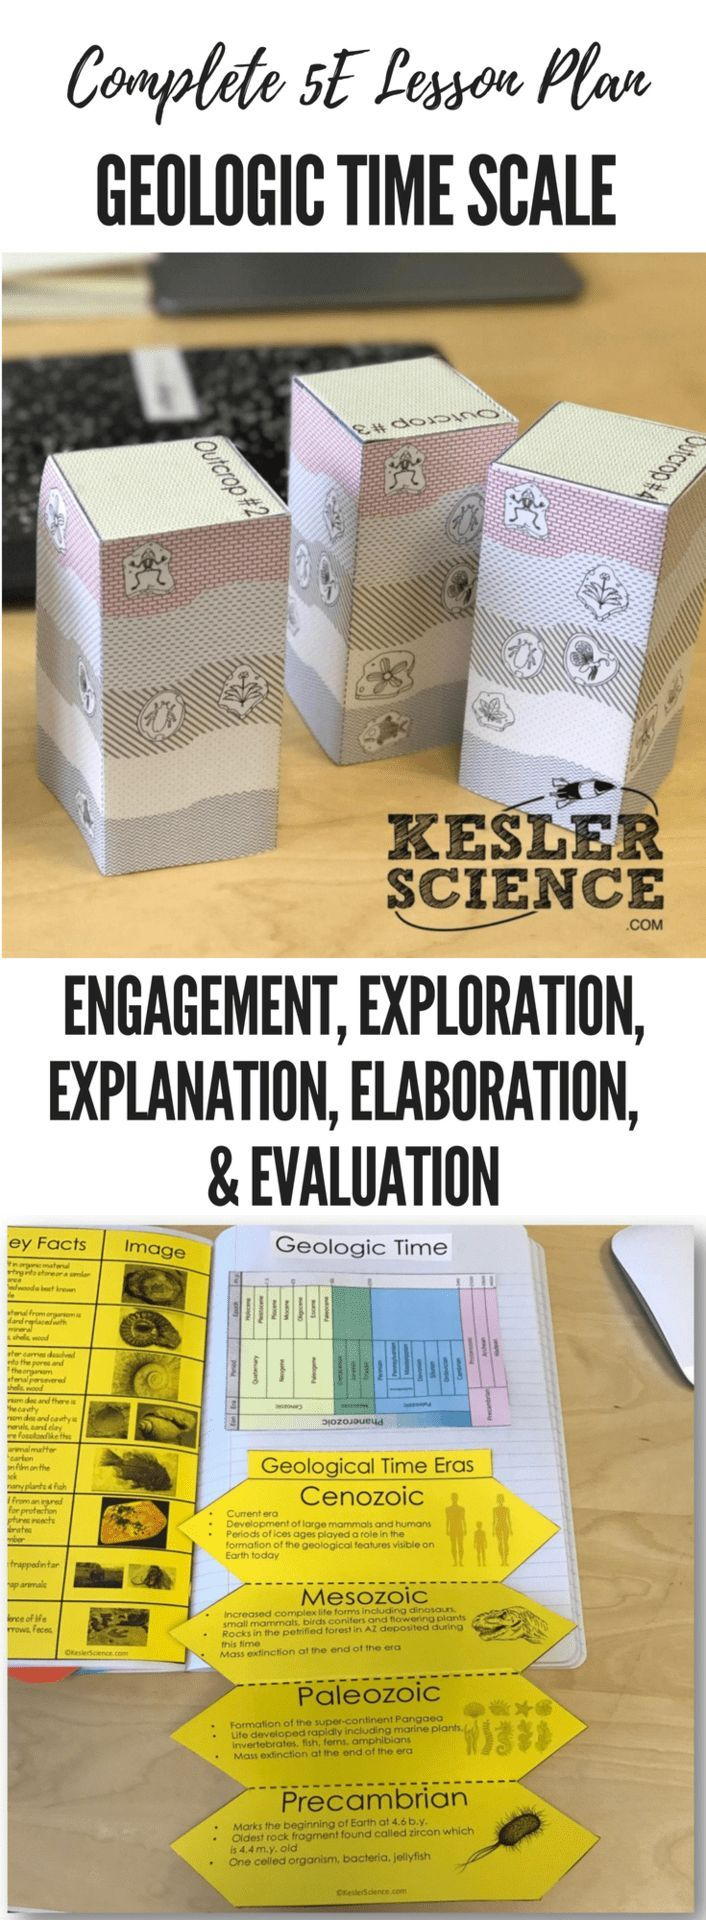 Geologic Time Scale Lesson Plan A Complete Science Lesson Using The 5e Method Of Instruction Kesler Science Earth Science Lessons Geologic Time Scale Earth Science Middle School